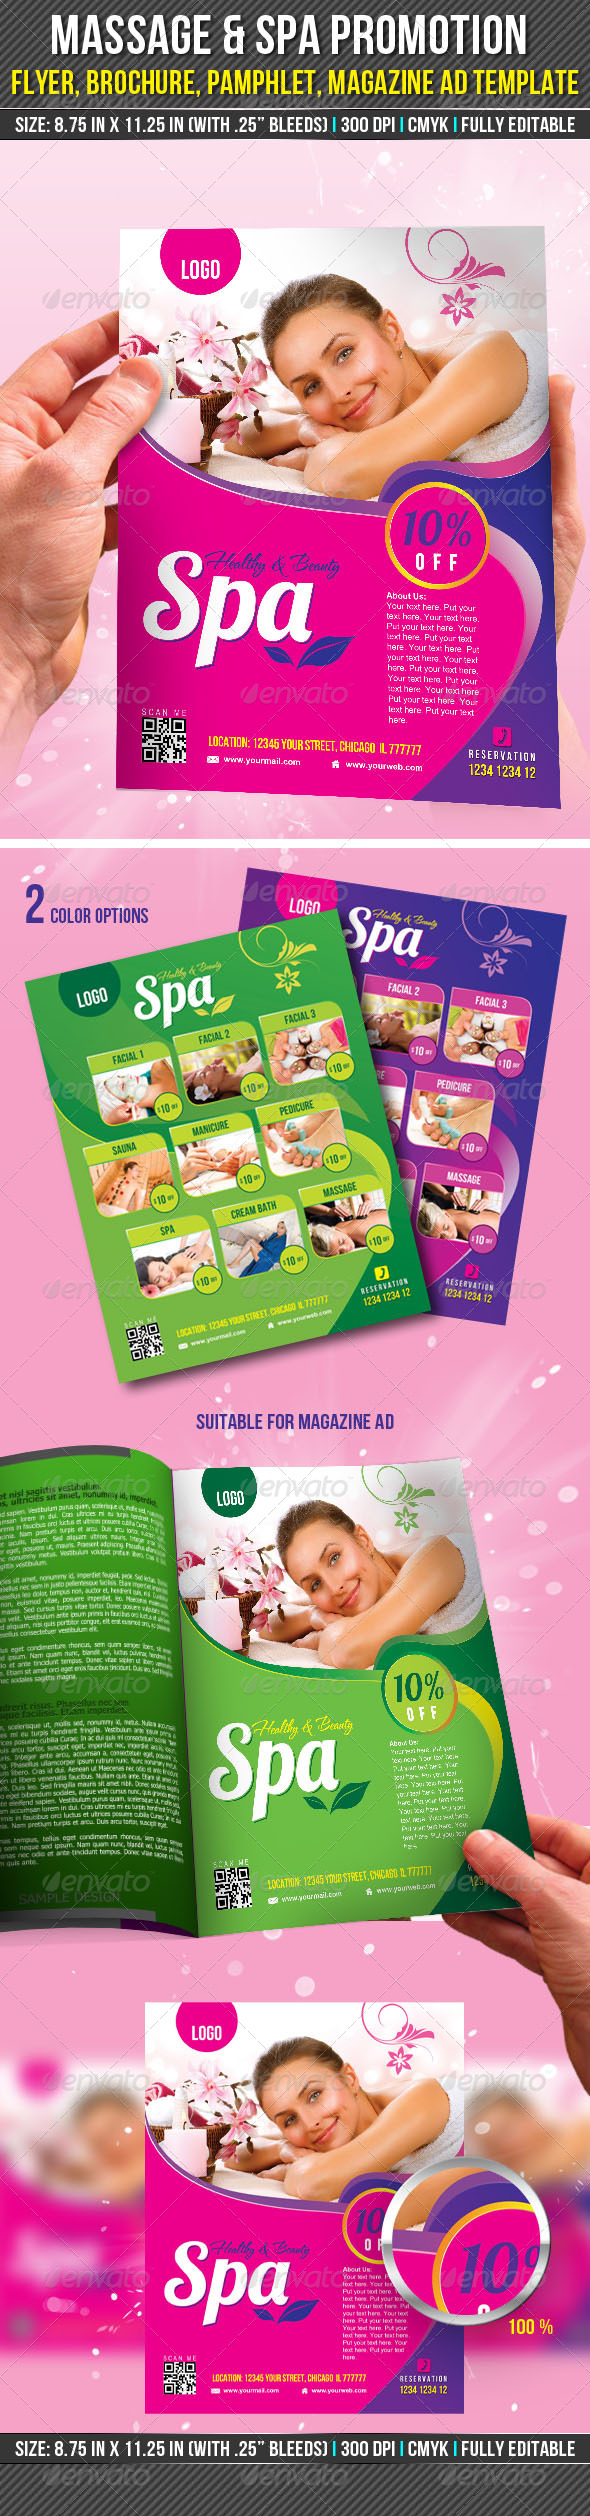 GraphicRiver Massage & Spa Promotion Flyer 7495875